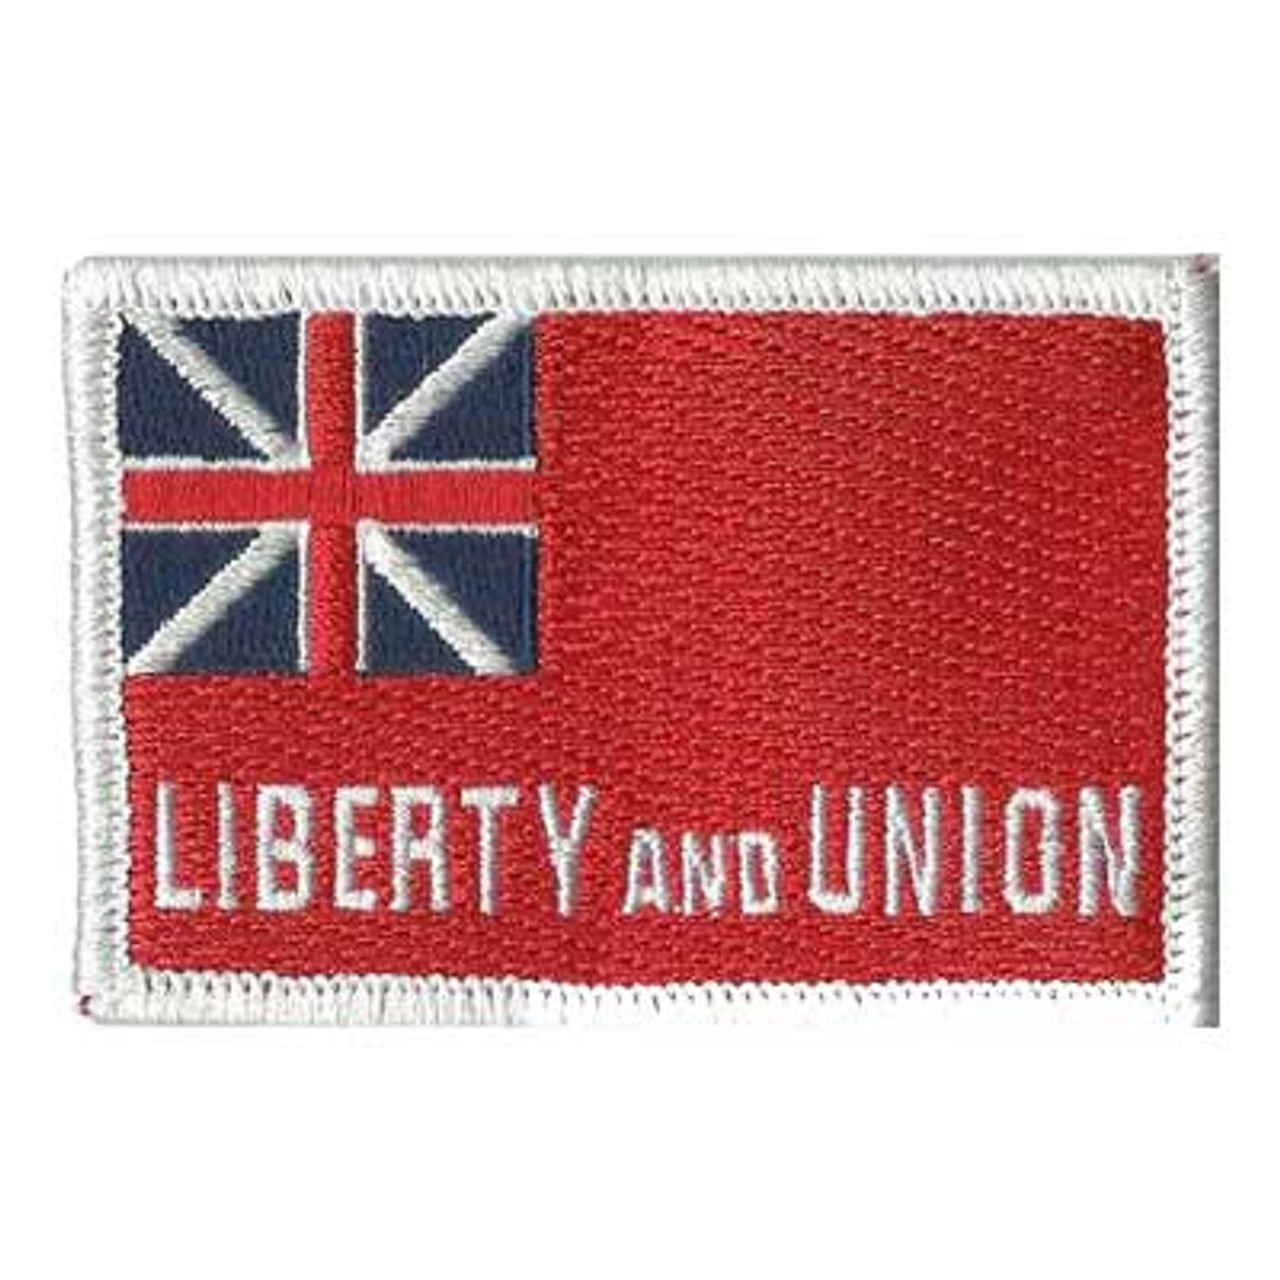 Taunton Historical Flag Tactical Patch